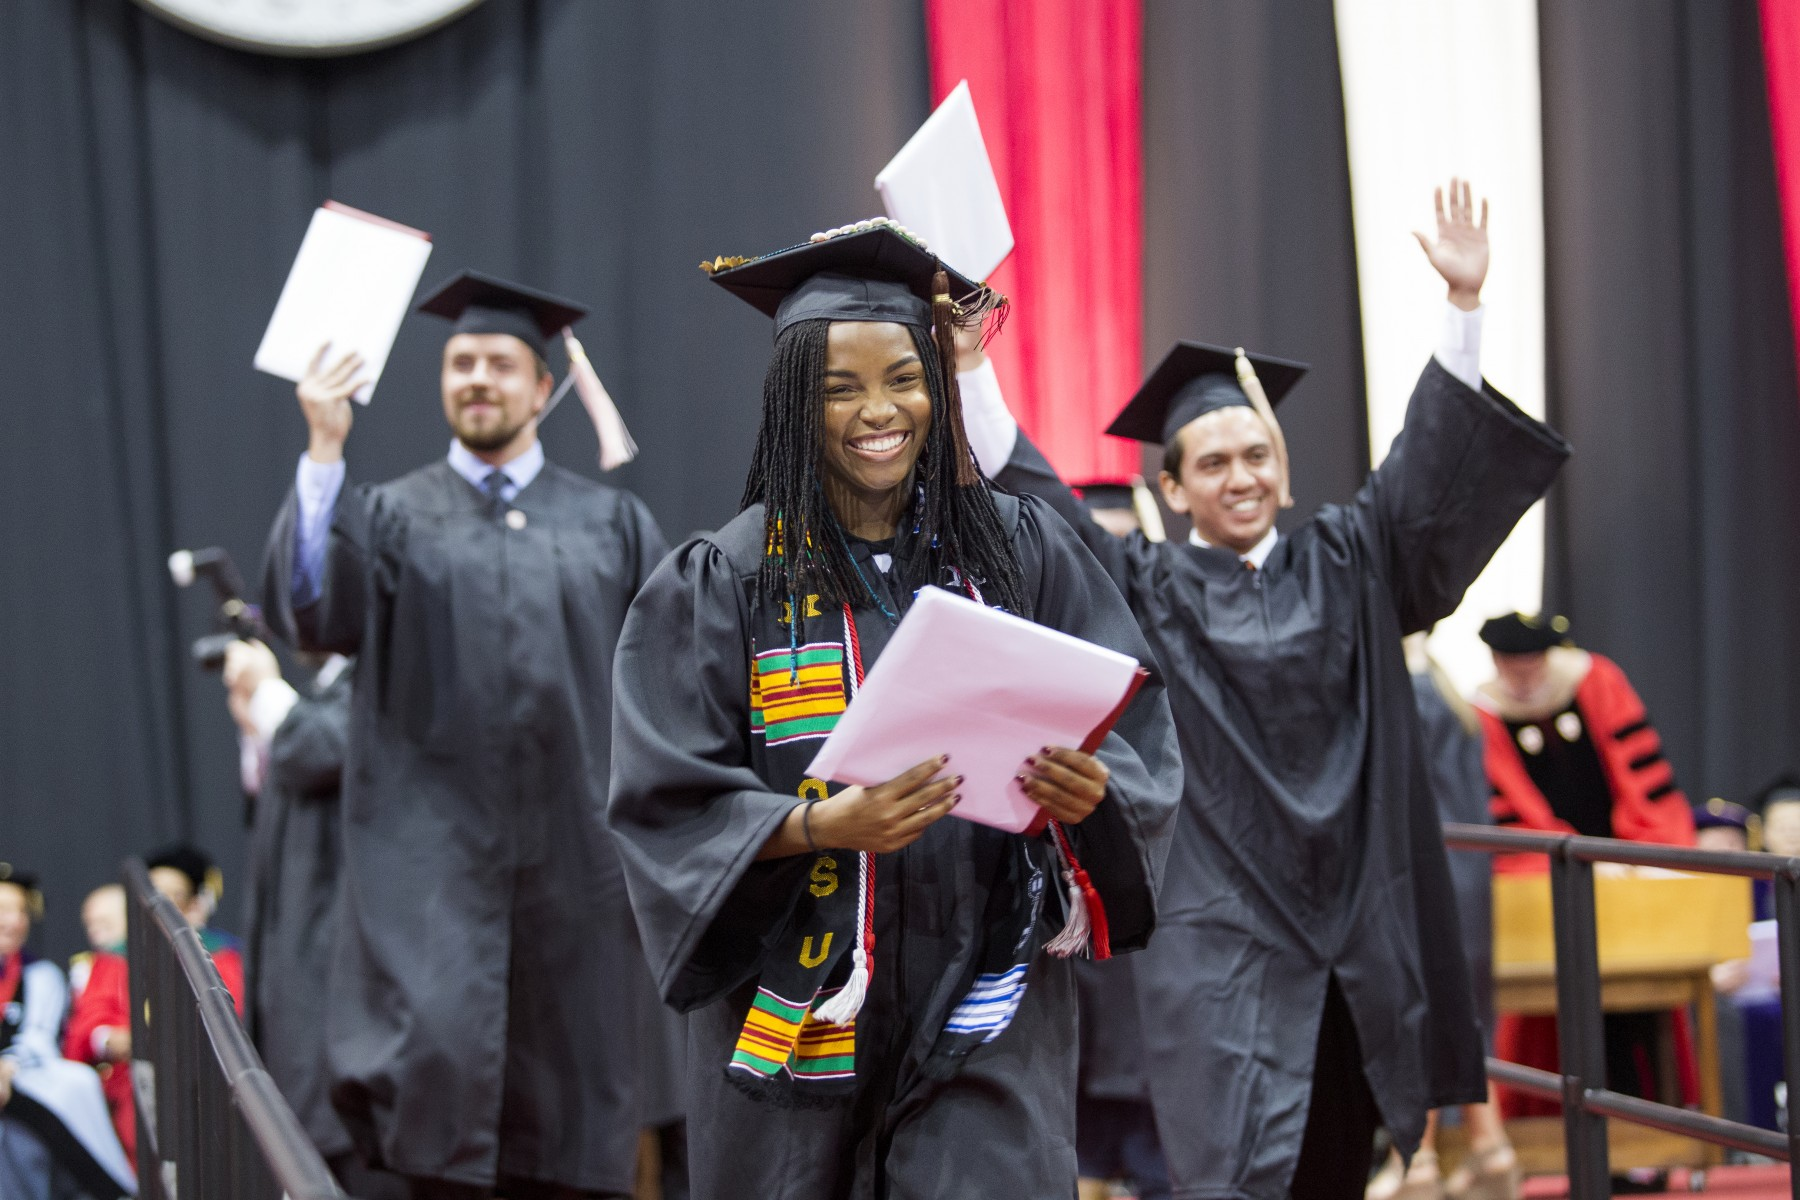 The Ohio State University - Summer 2018 Commencement